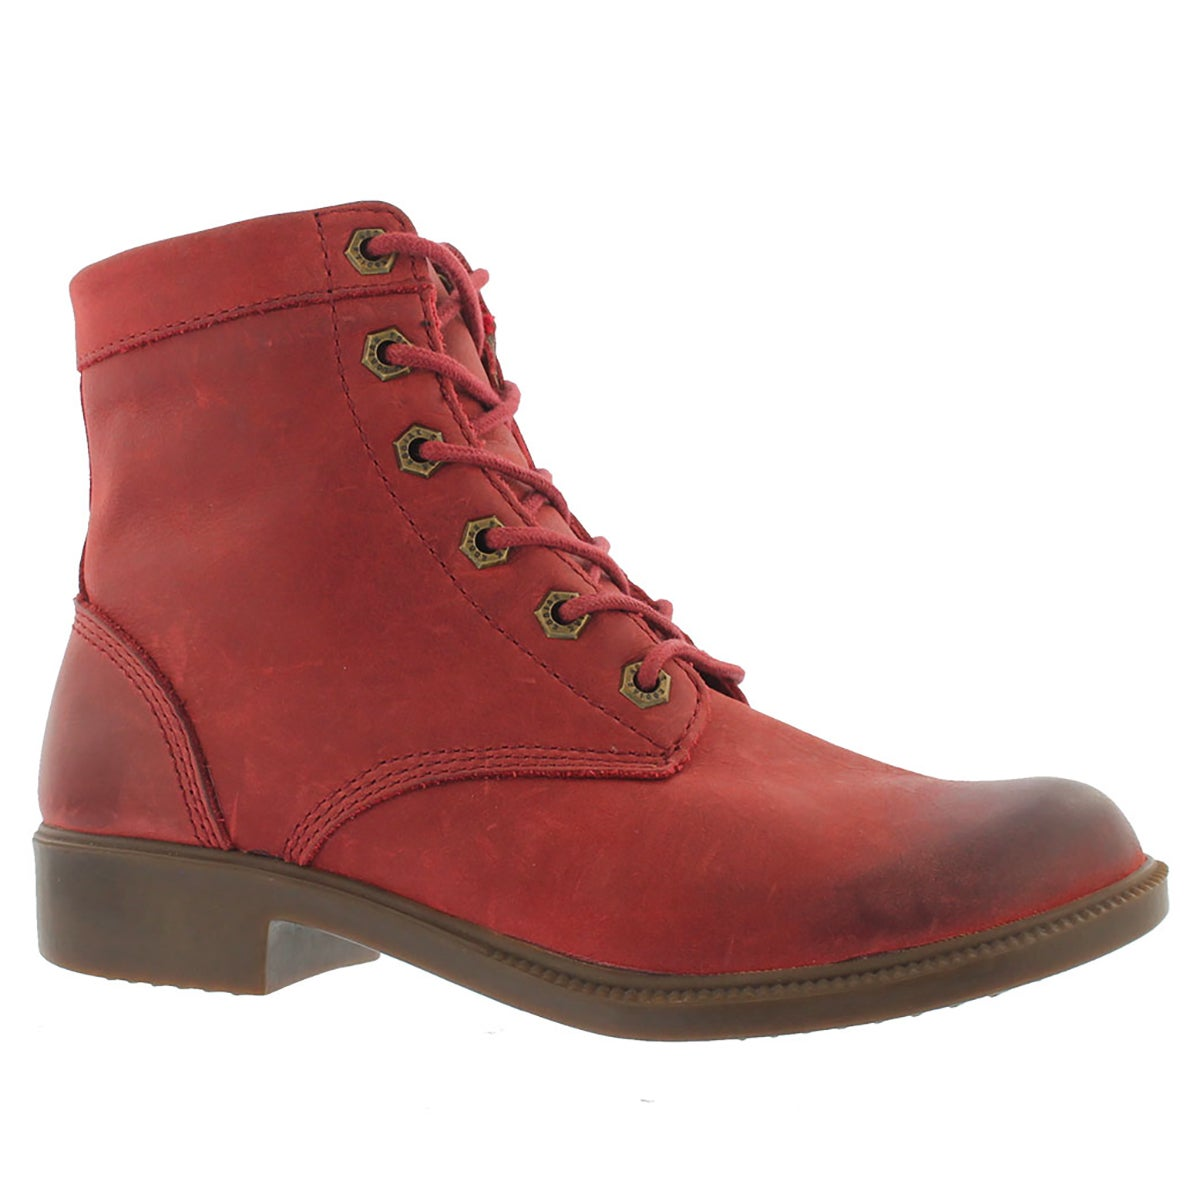 Women's ORIGINAL red waterproof ankle boots